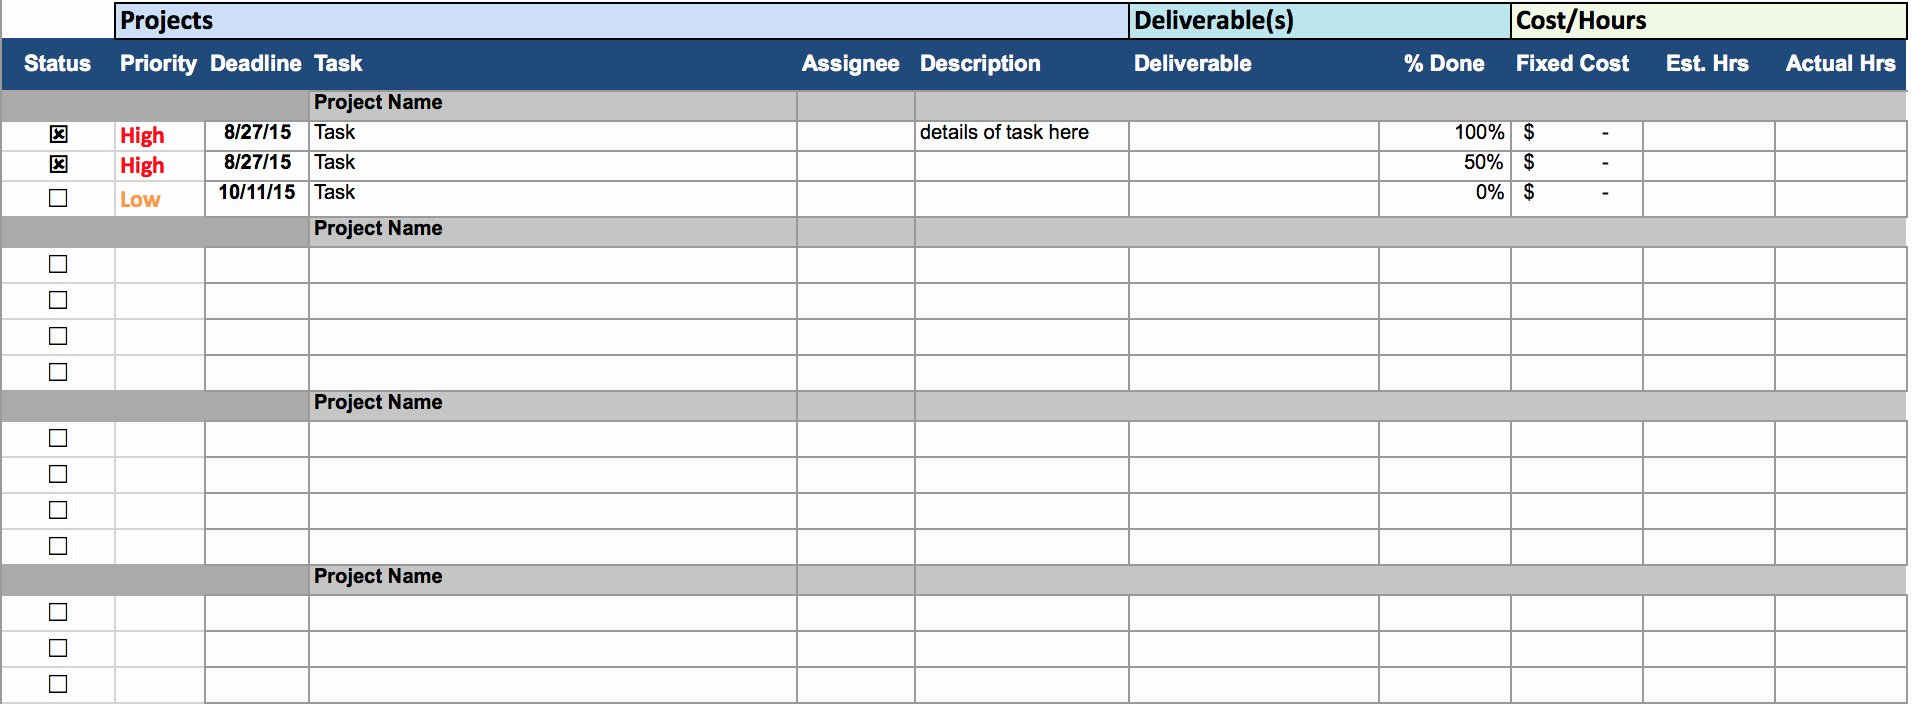 Applicant Tracking Spreadsheet Template New Job Tracking Spreadsheet Template Payment Spreadshee Job